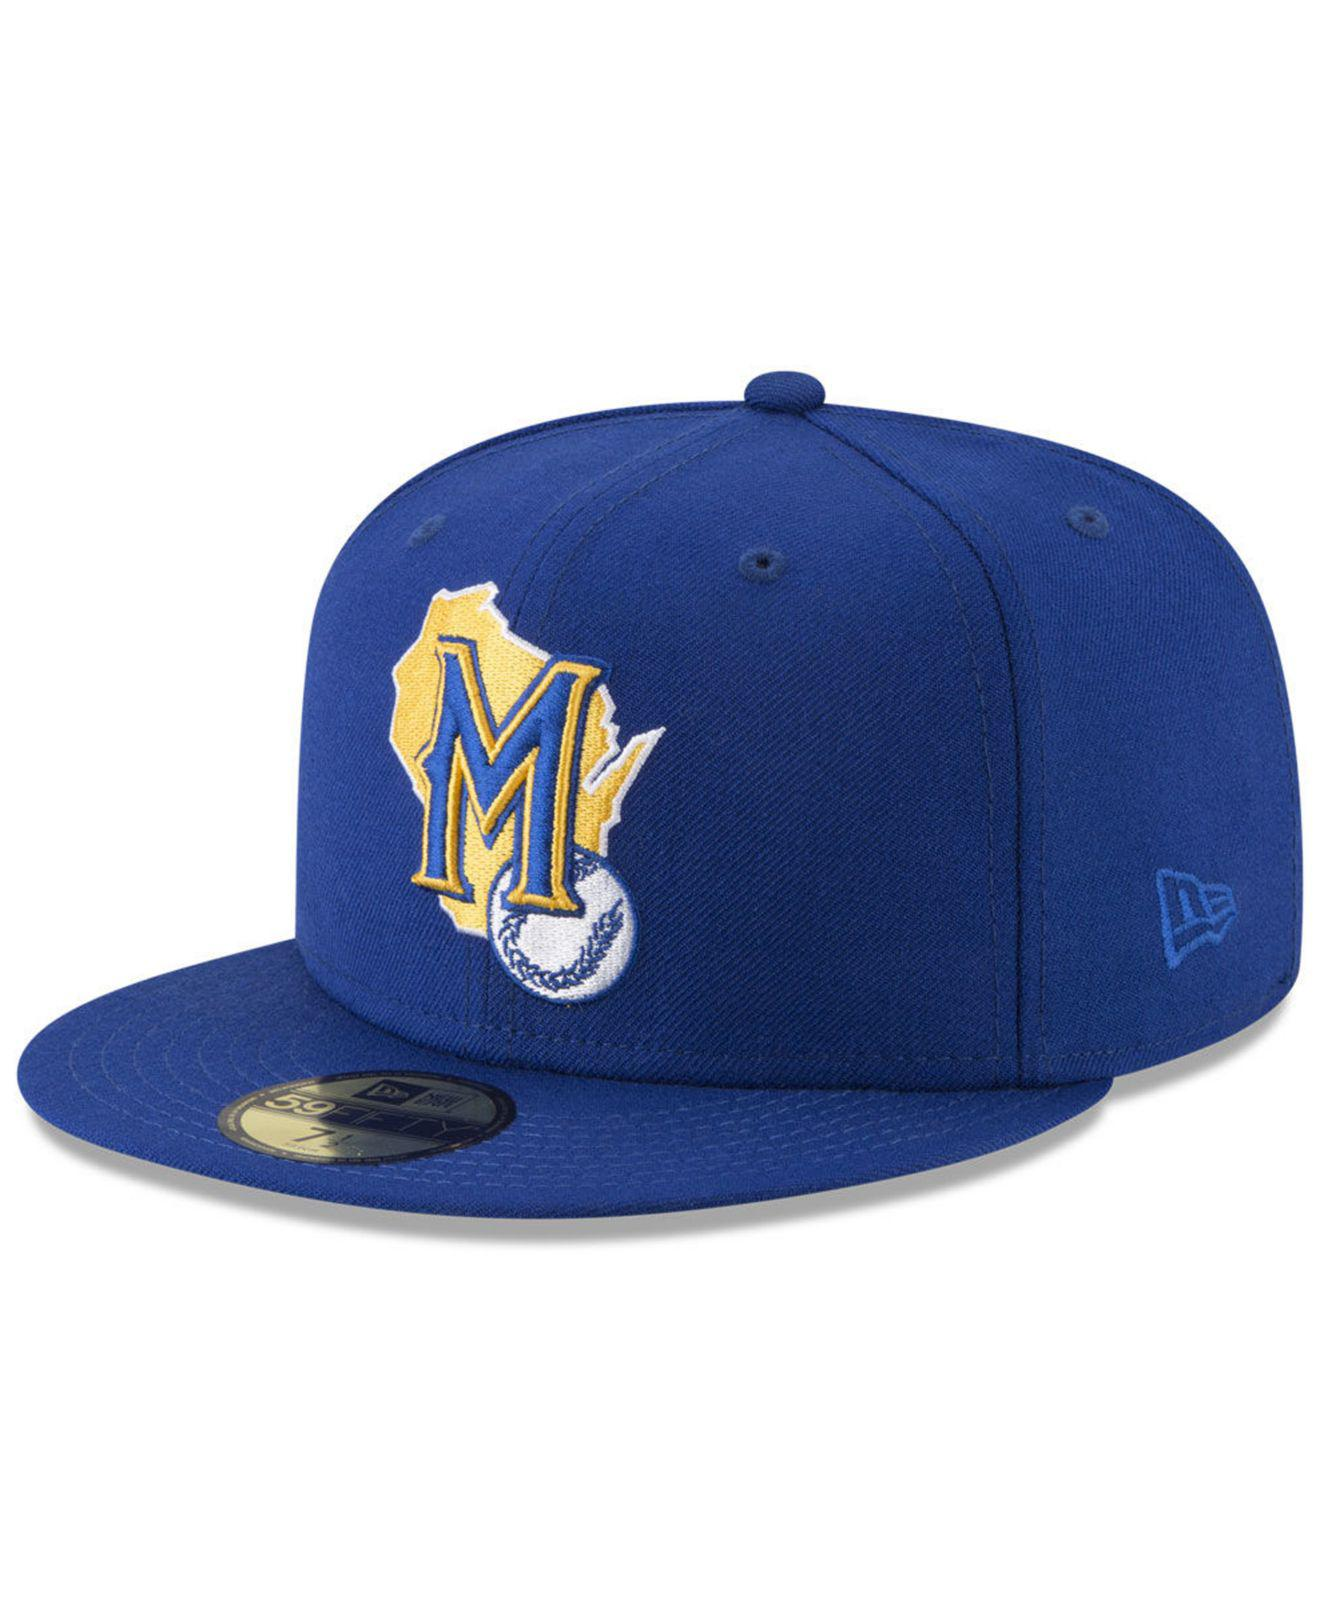 6c6067a0 KTZ Blue Milwaukee Brewers Batting Practice Wool Flip 59fifty Fitted Cap  for men